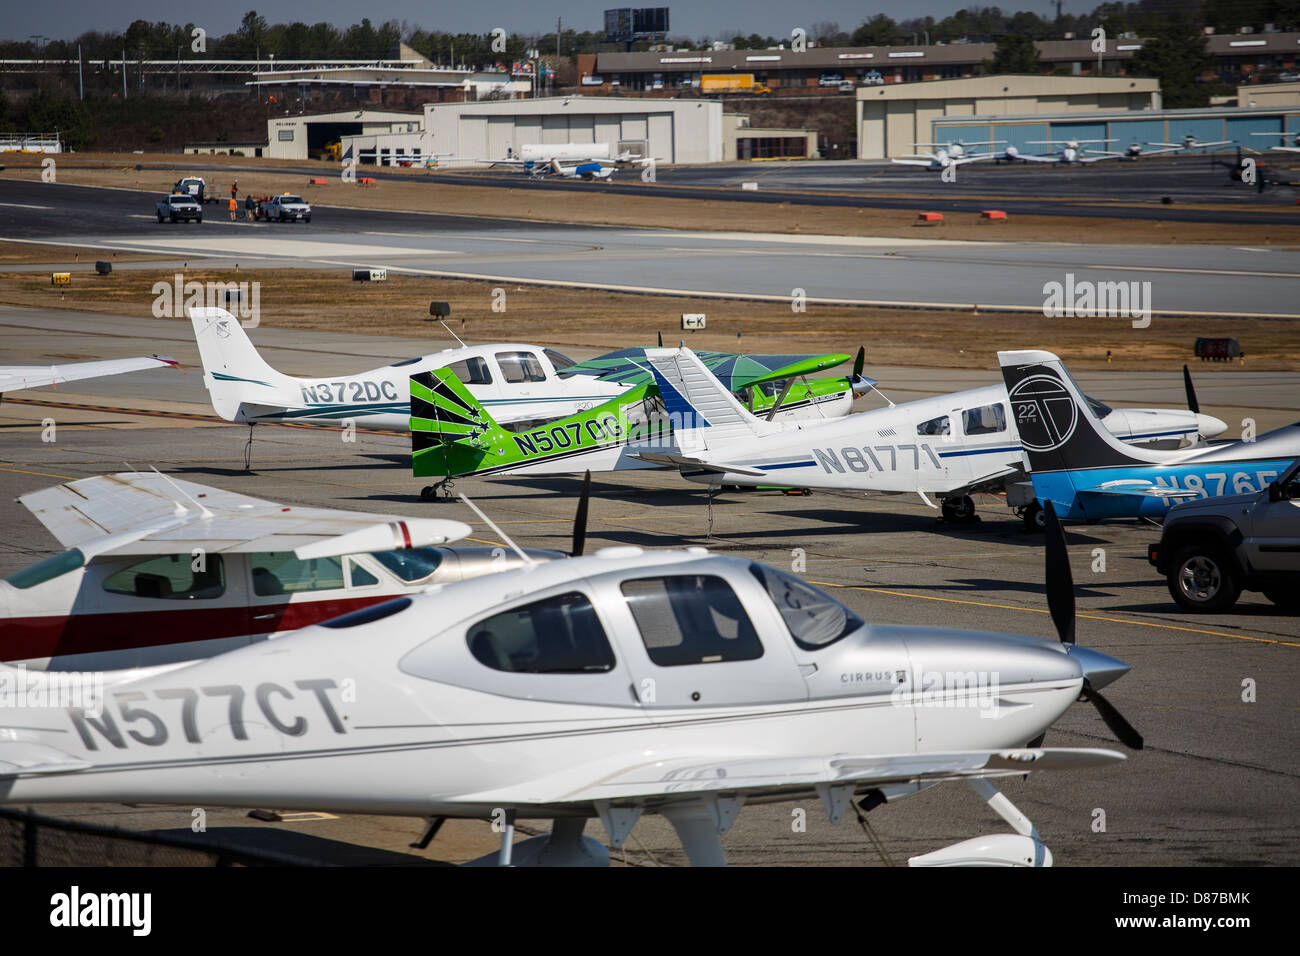 Private aircraft on the tarmac of a small regional airport - Stock Image